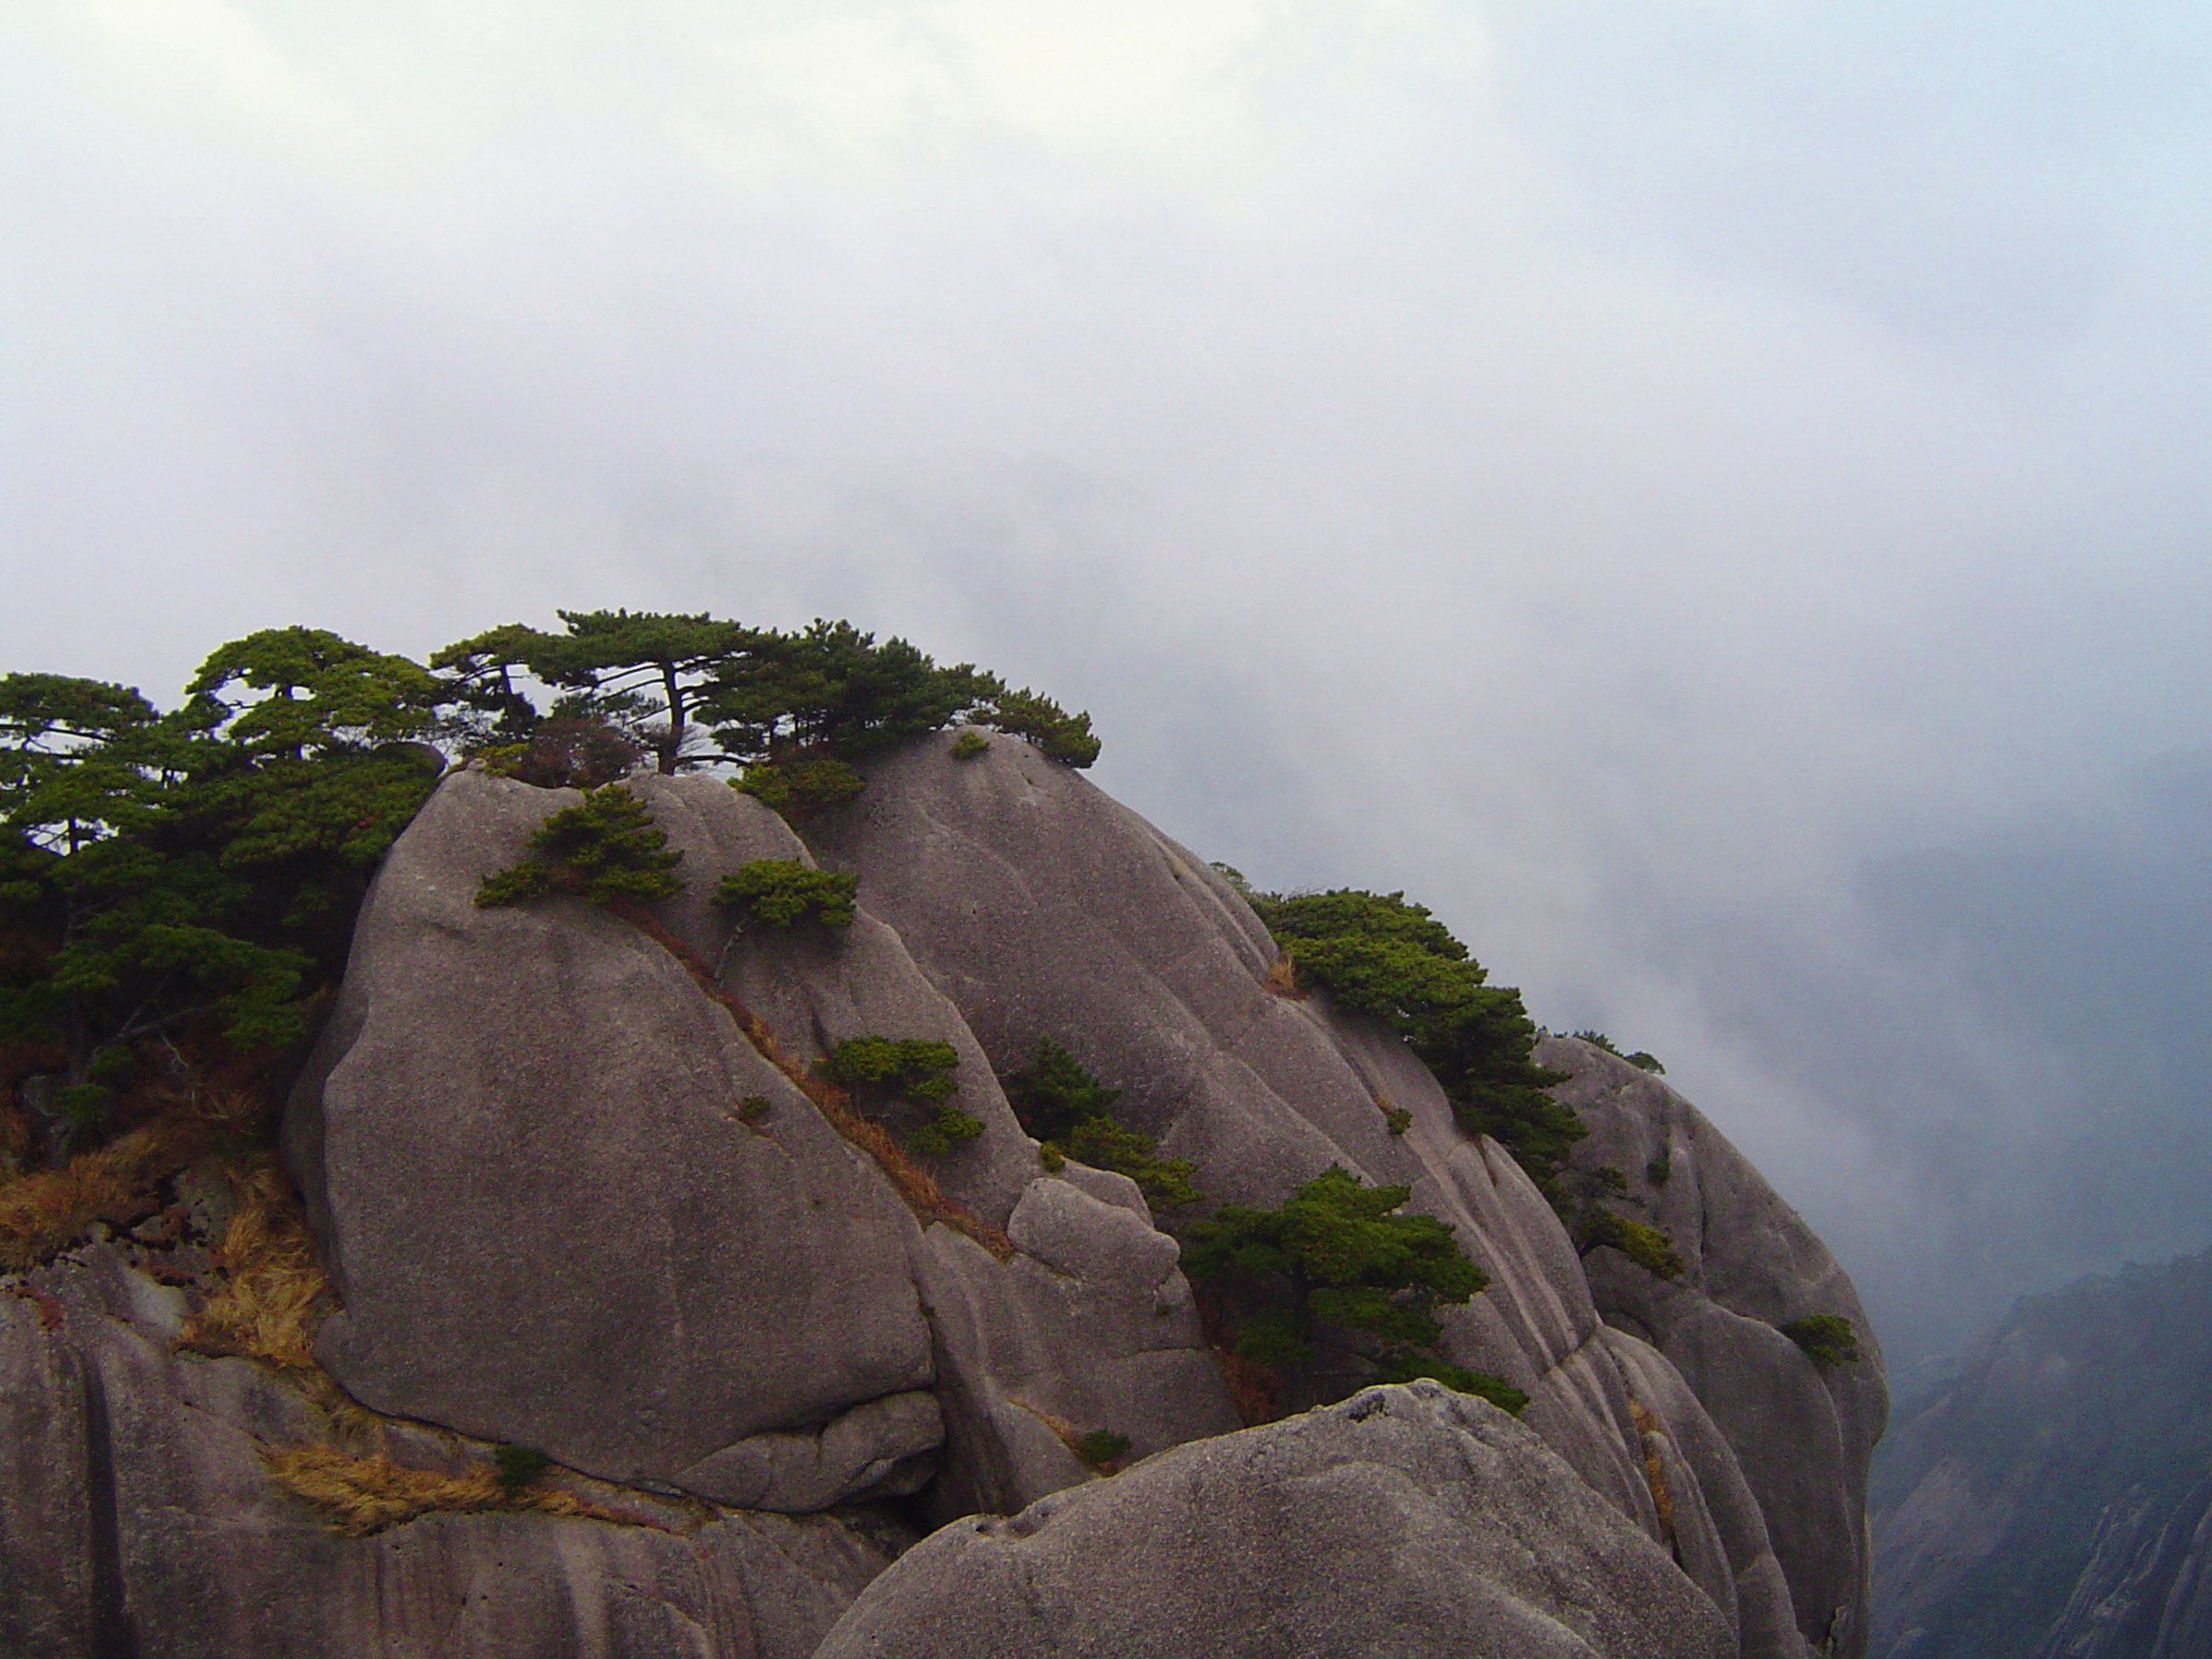 Green Plants Growing on Huge Rock Formations at Yellow Mountains in China with Foggy Background.